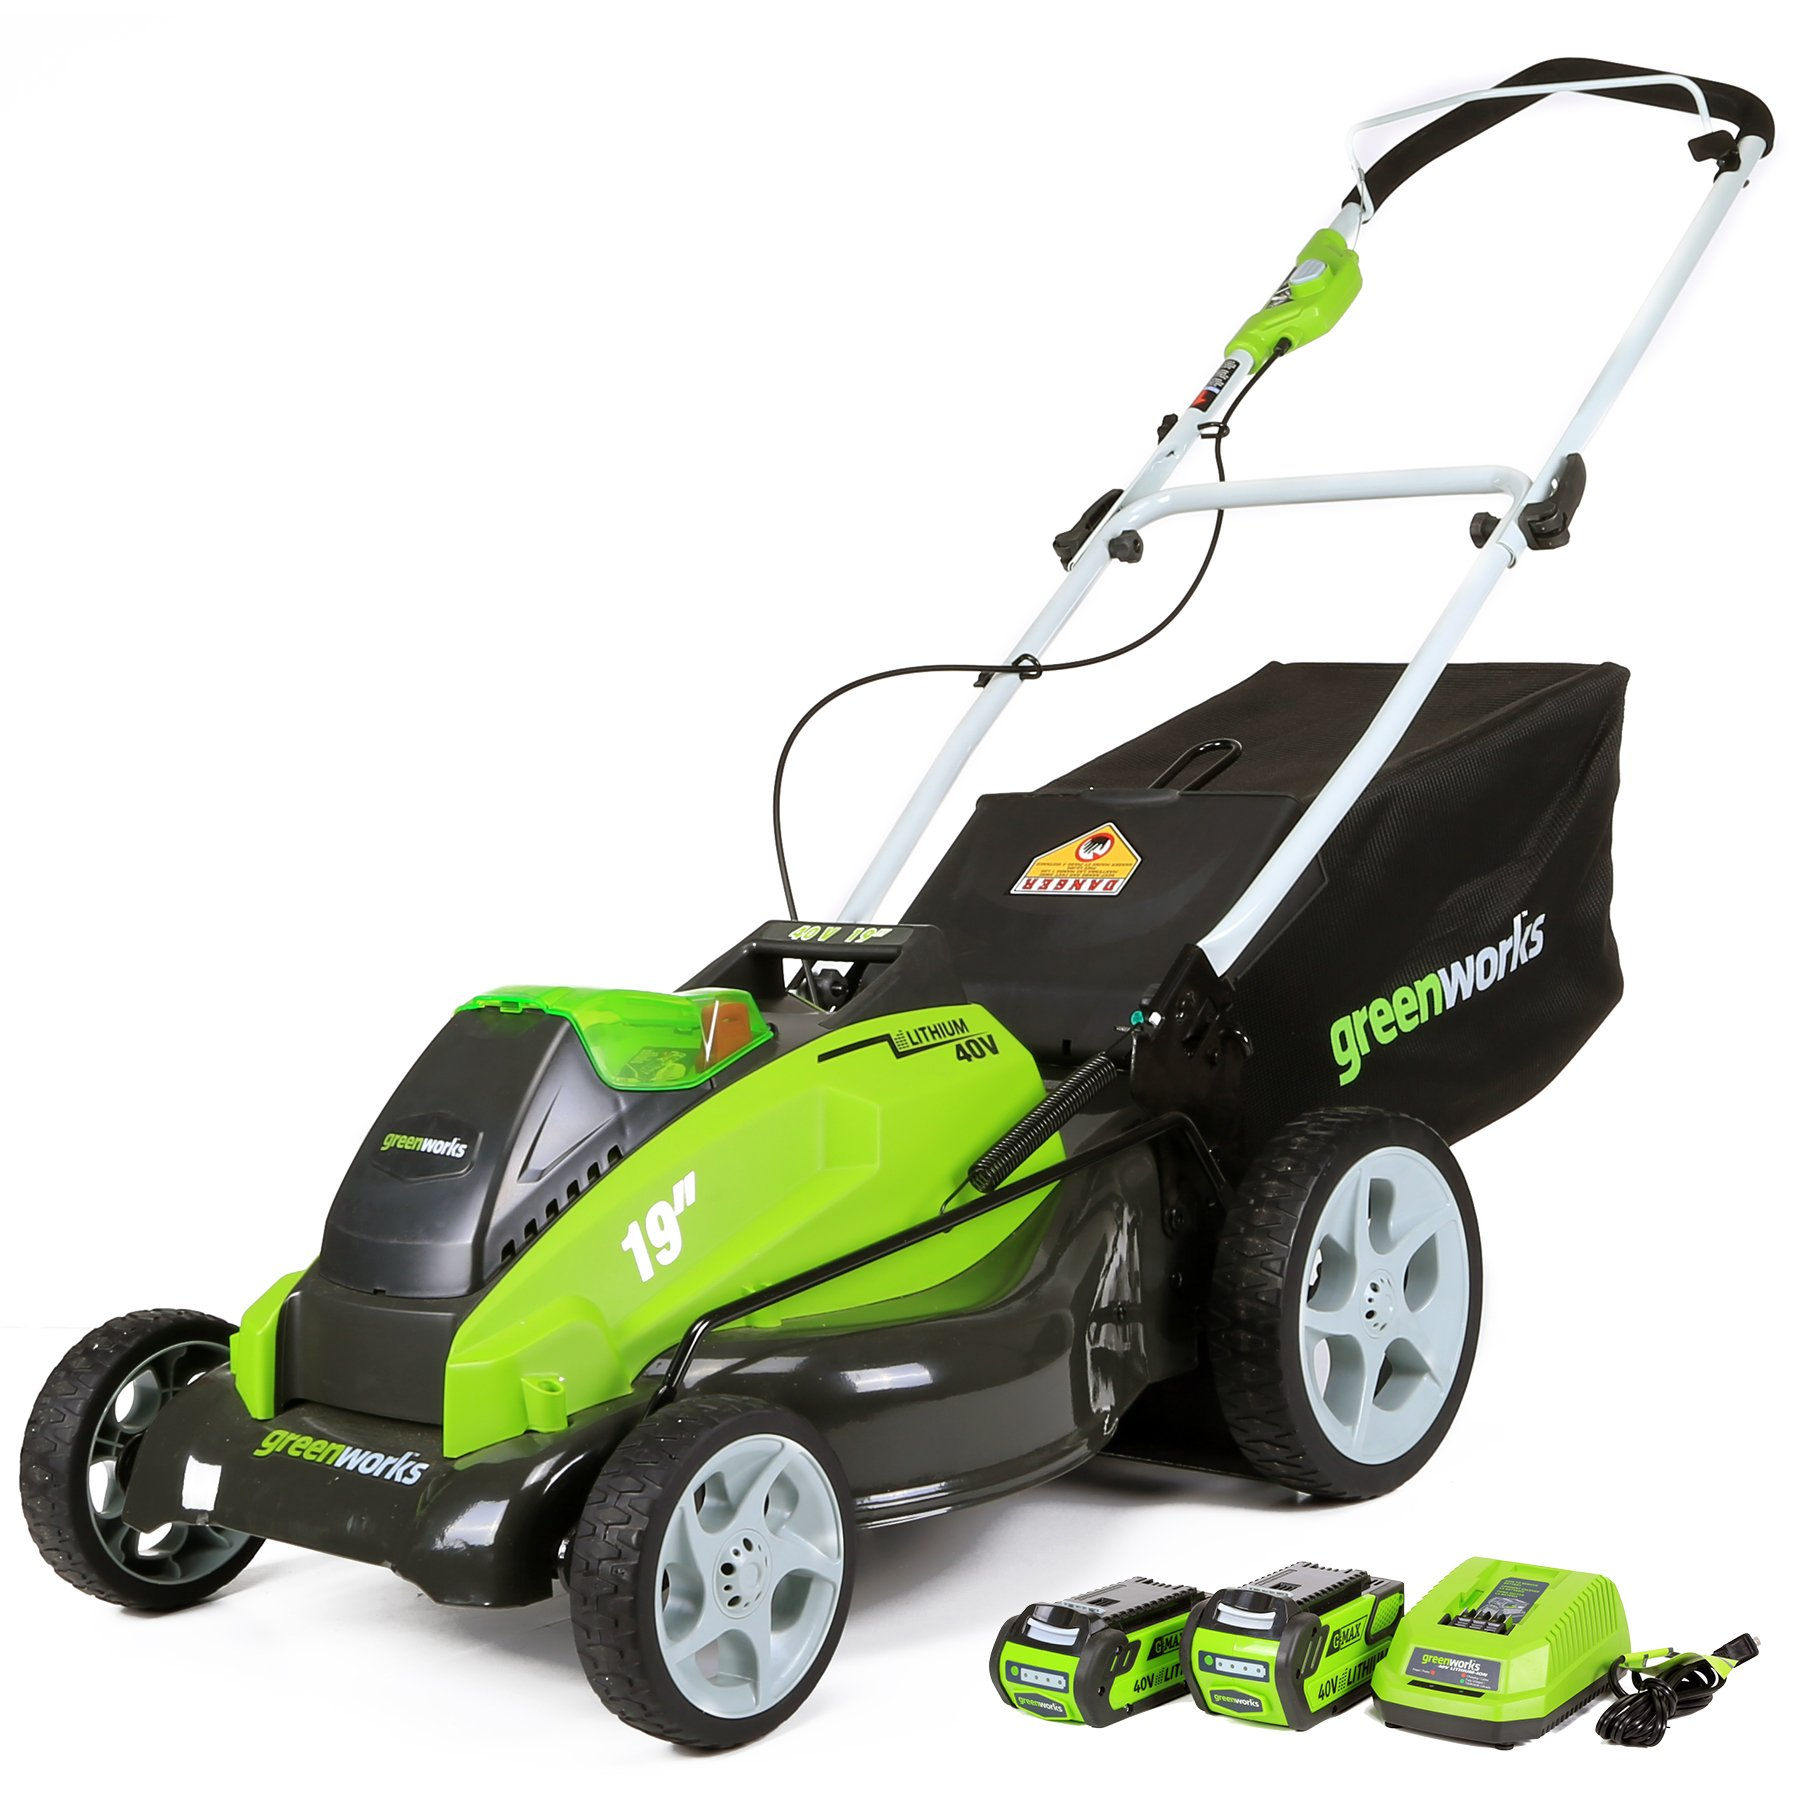 GreenWorks 19-Inch 40V Cordless Lawn Mower, 4.0 AH & 2.0 AH Battery Included 25223